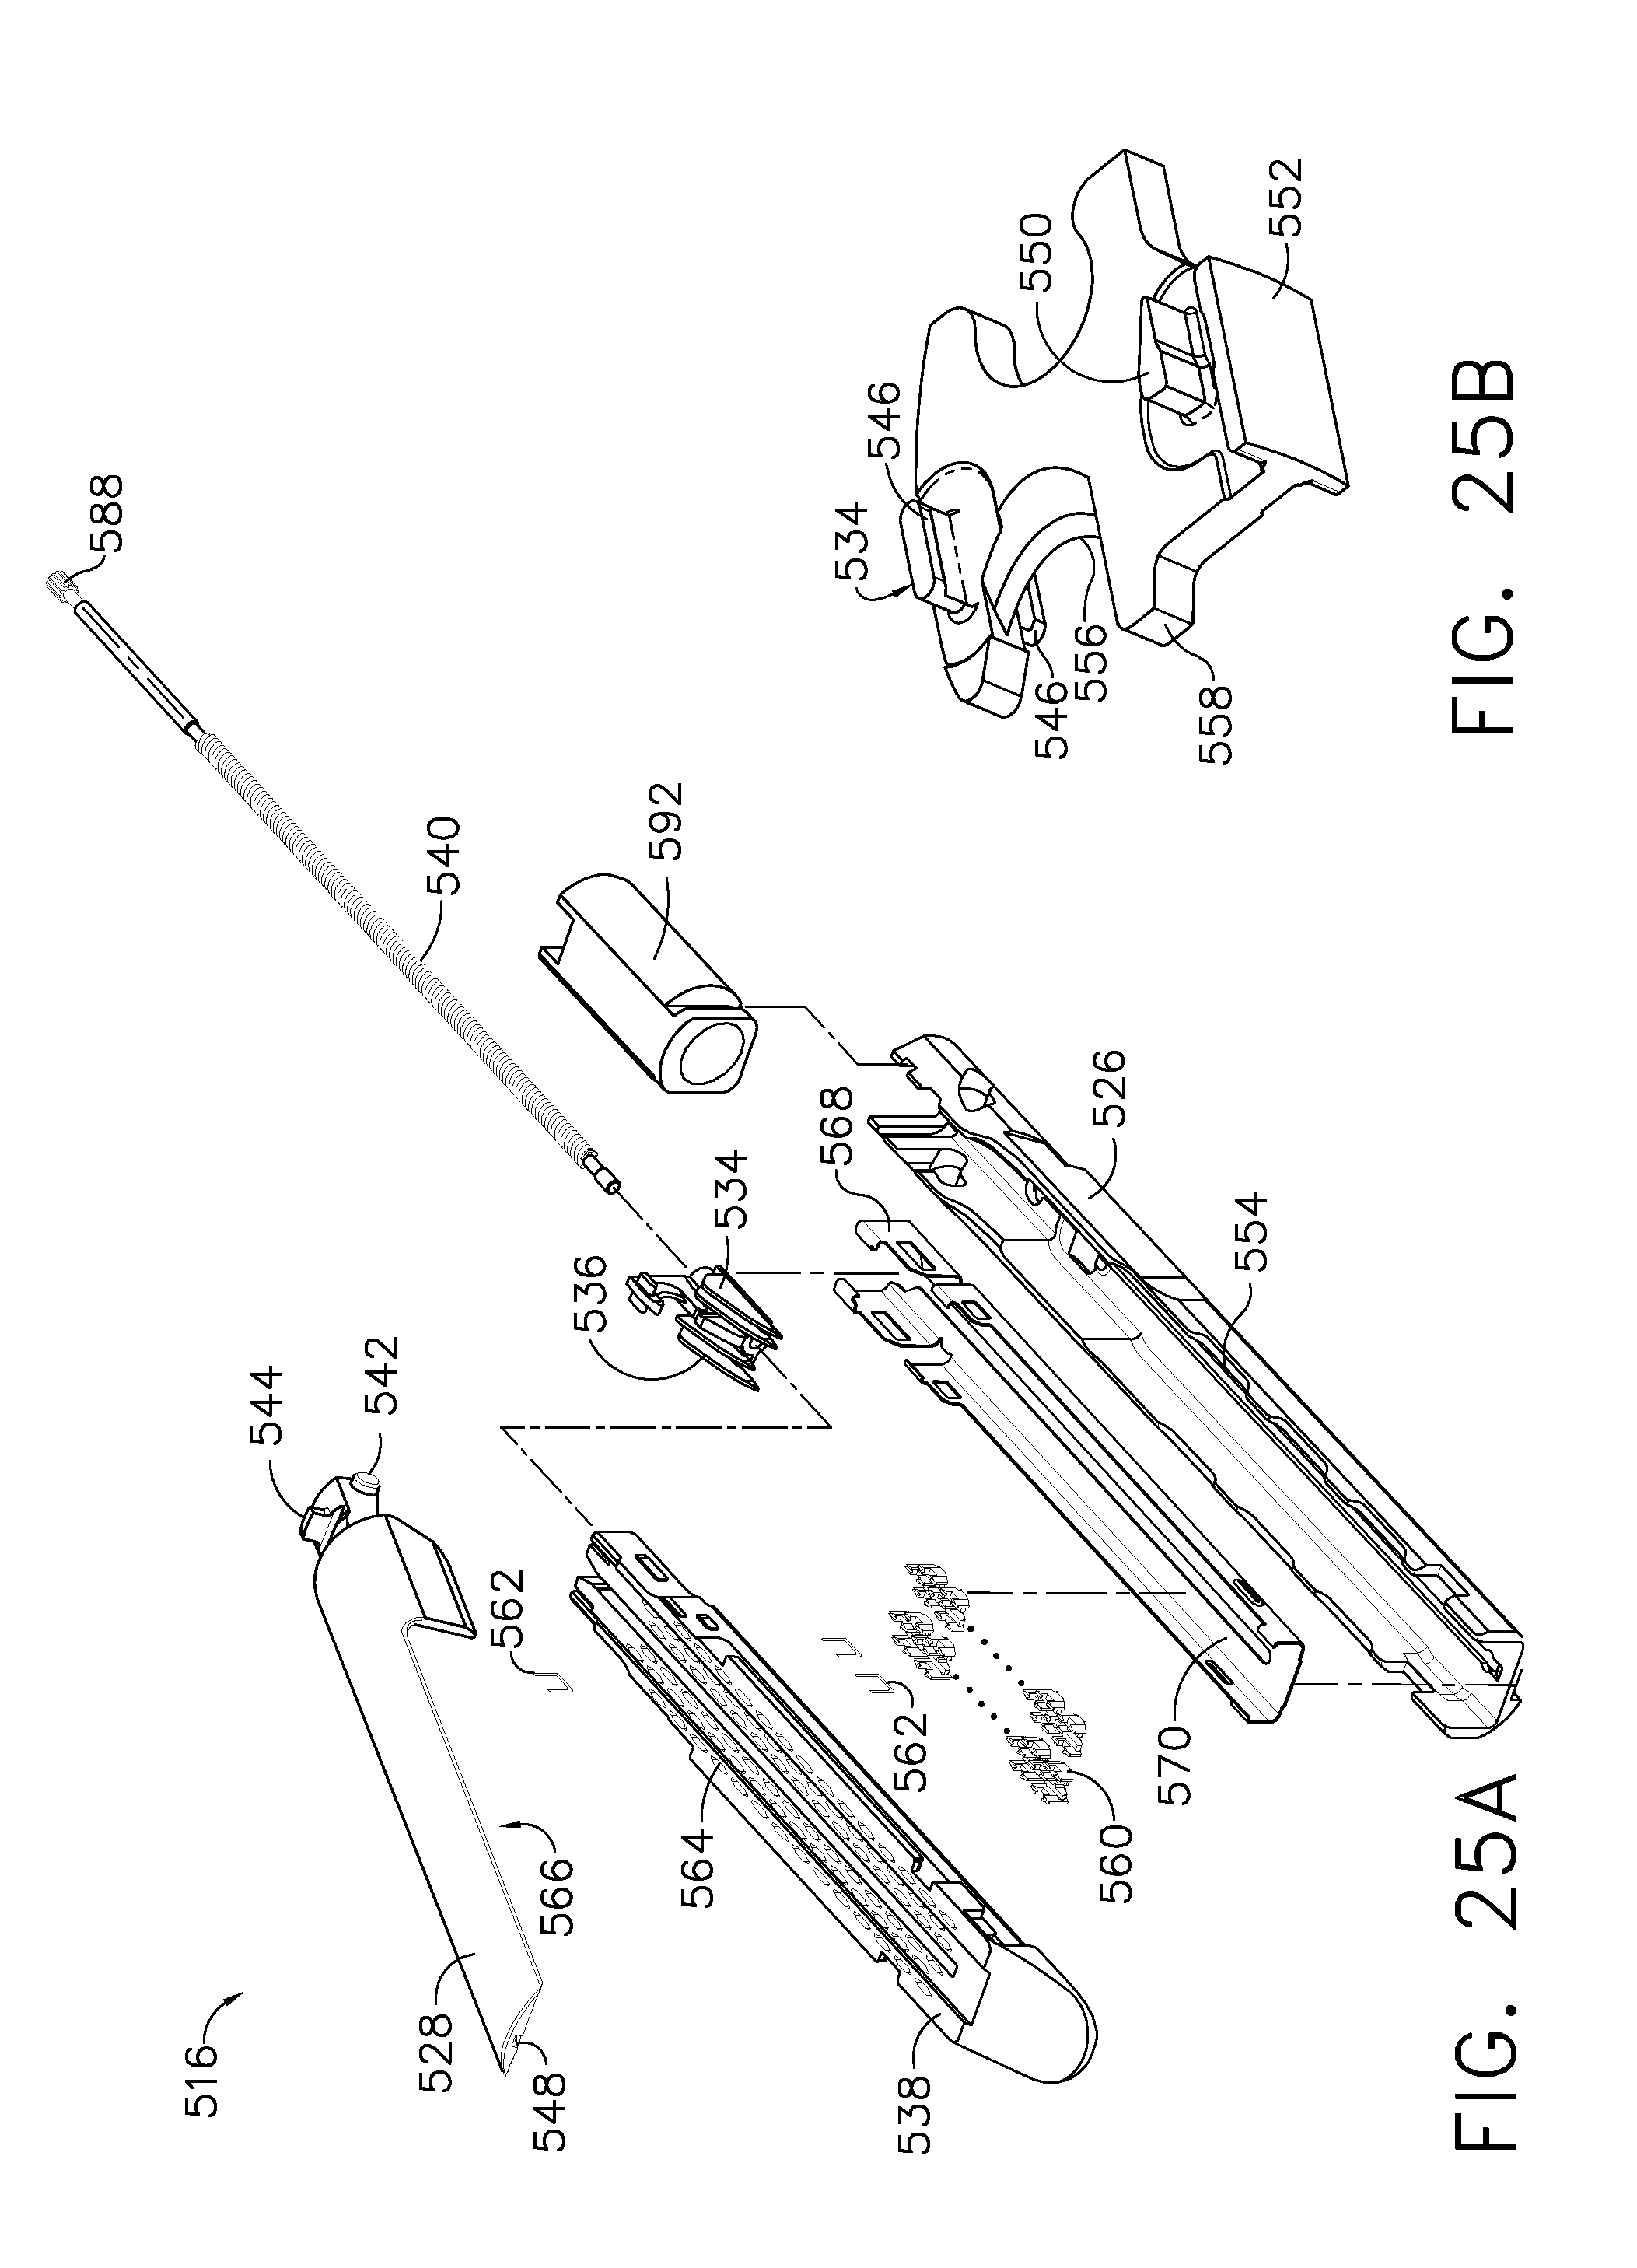 Us8632535b2 Interlock And Surgical Instrument Including Same Diagram Also 5 Pin Relay With Connector Moreover Universal Pct 13 Google Patents